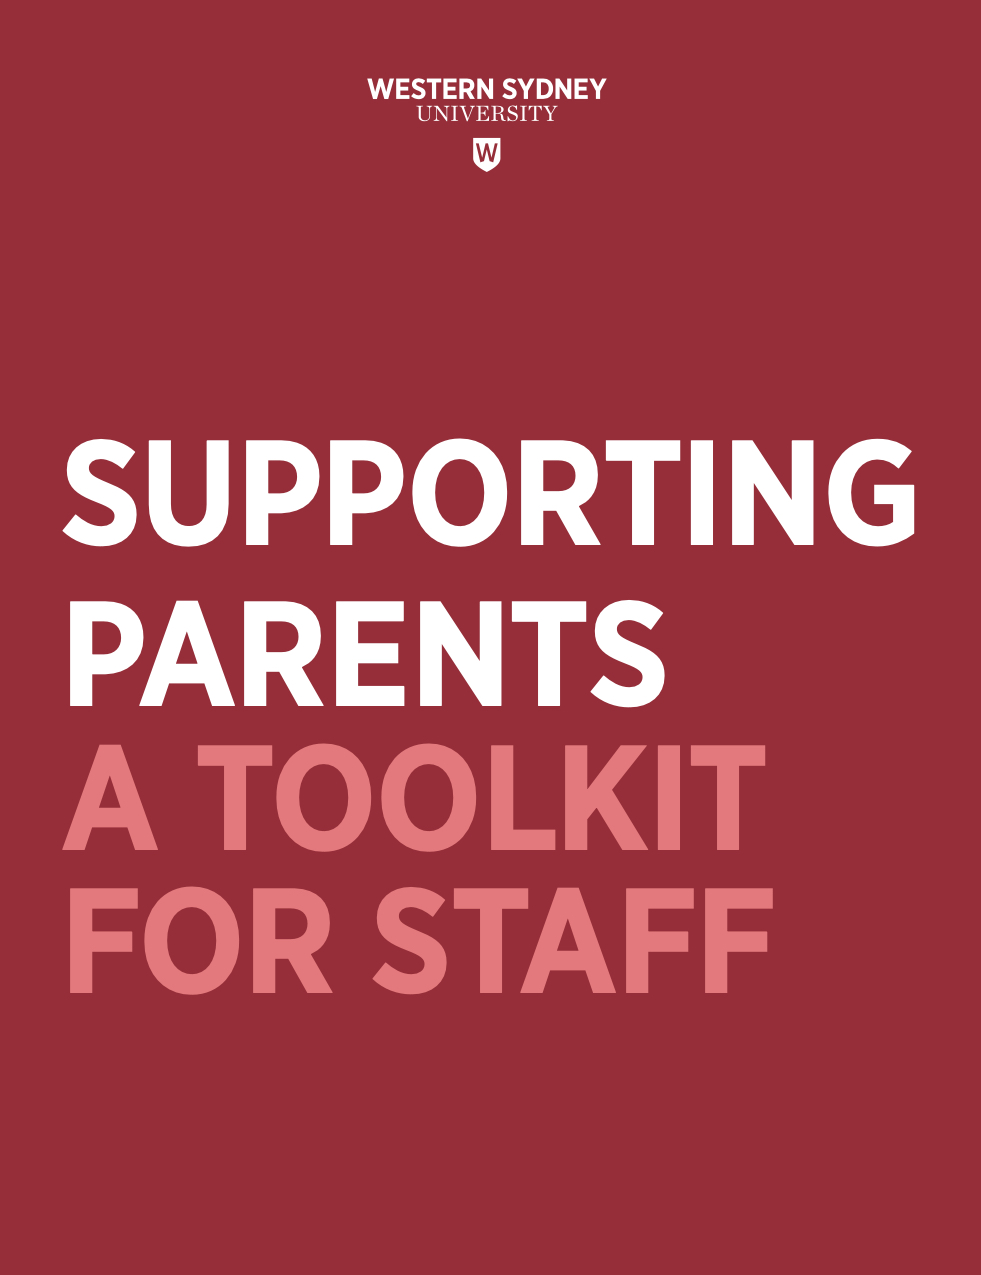 Supporting Parents toolkit link